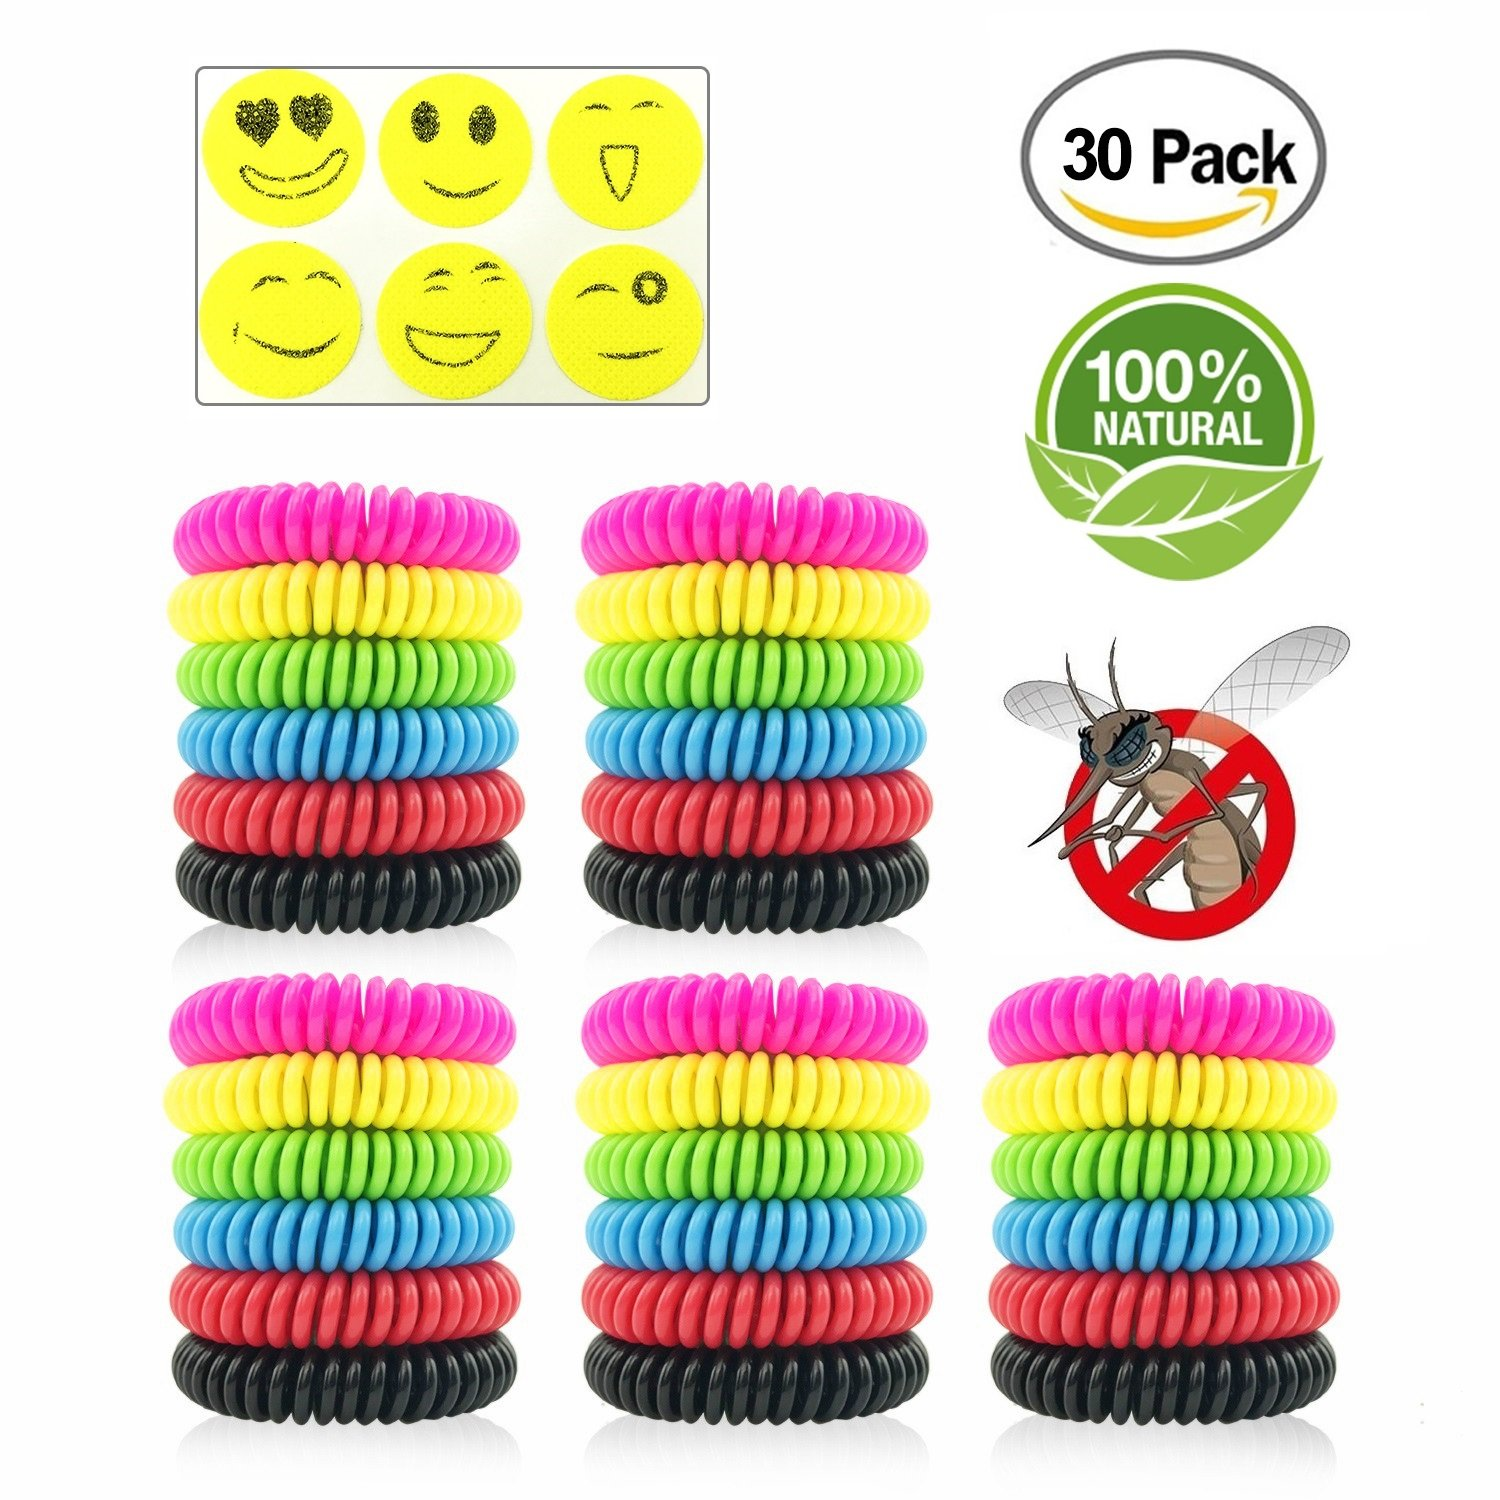 Sumpol Mosquito Repellent Bracelets 30 Pcs, Natural Waterproof Wristbands, Pest Bug Control Bands for Kids and Adults Outdoor Camping Fishing Traveling Swimming